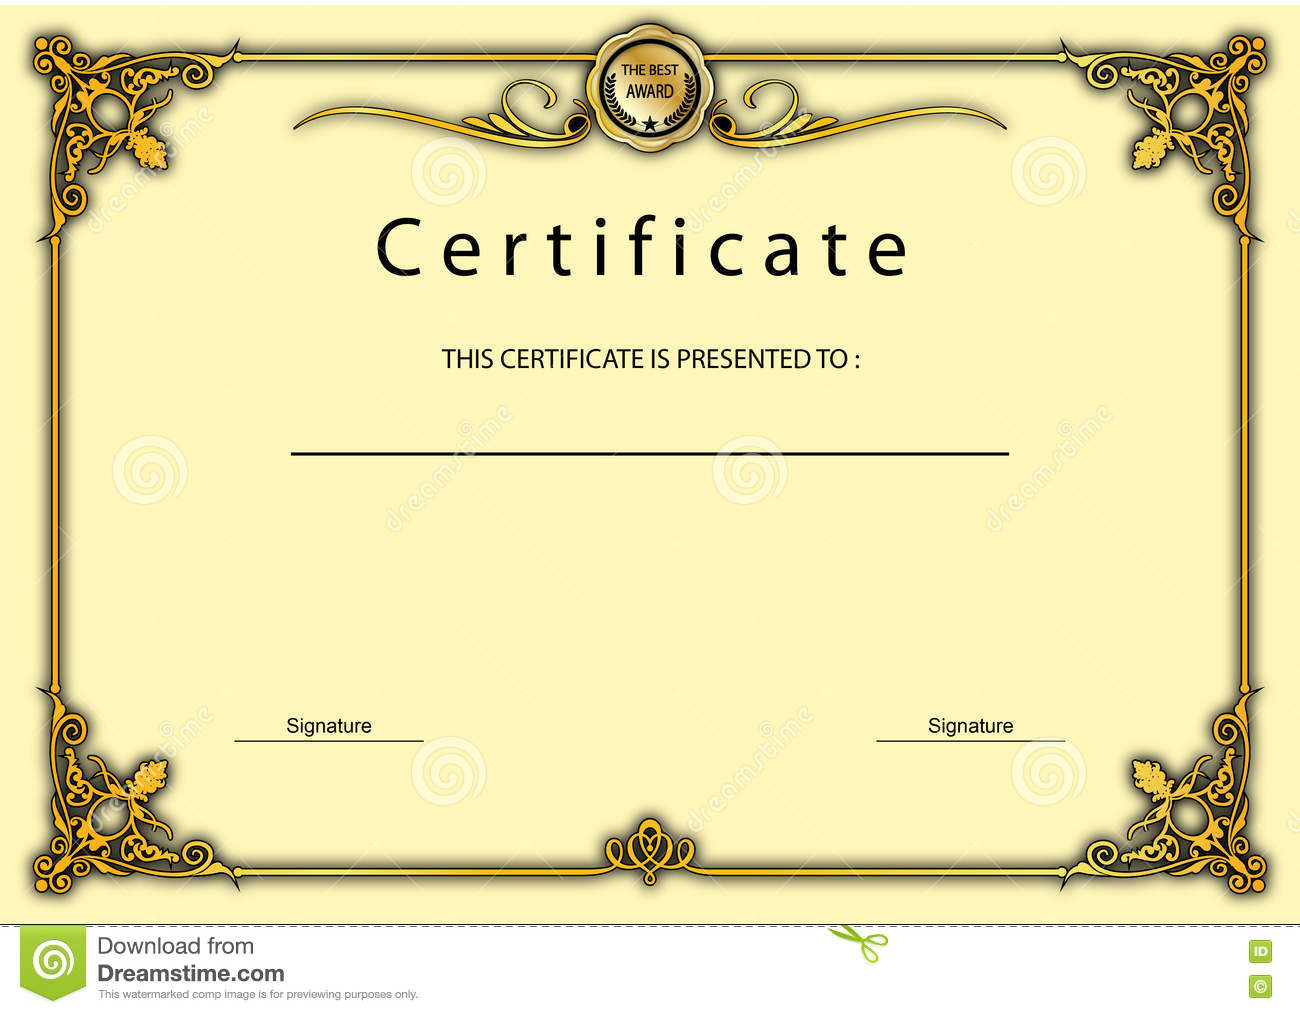 Pics Photos - Certificate Diploma Template Award Design With Guilloche